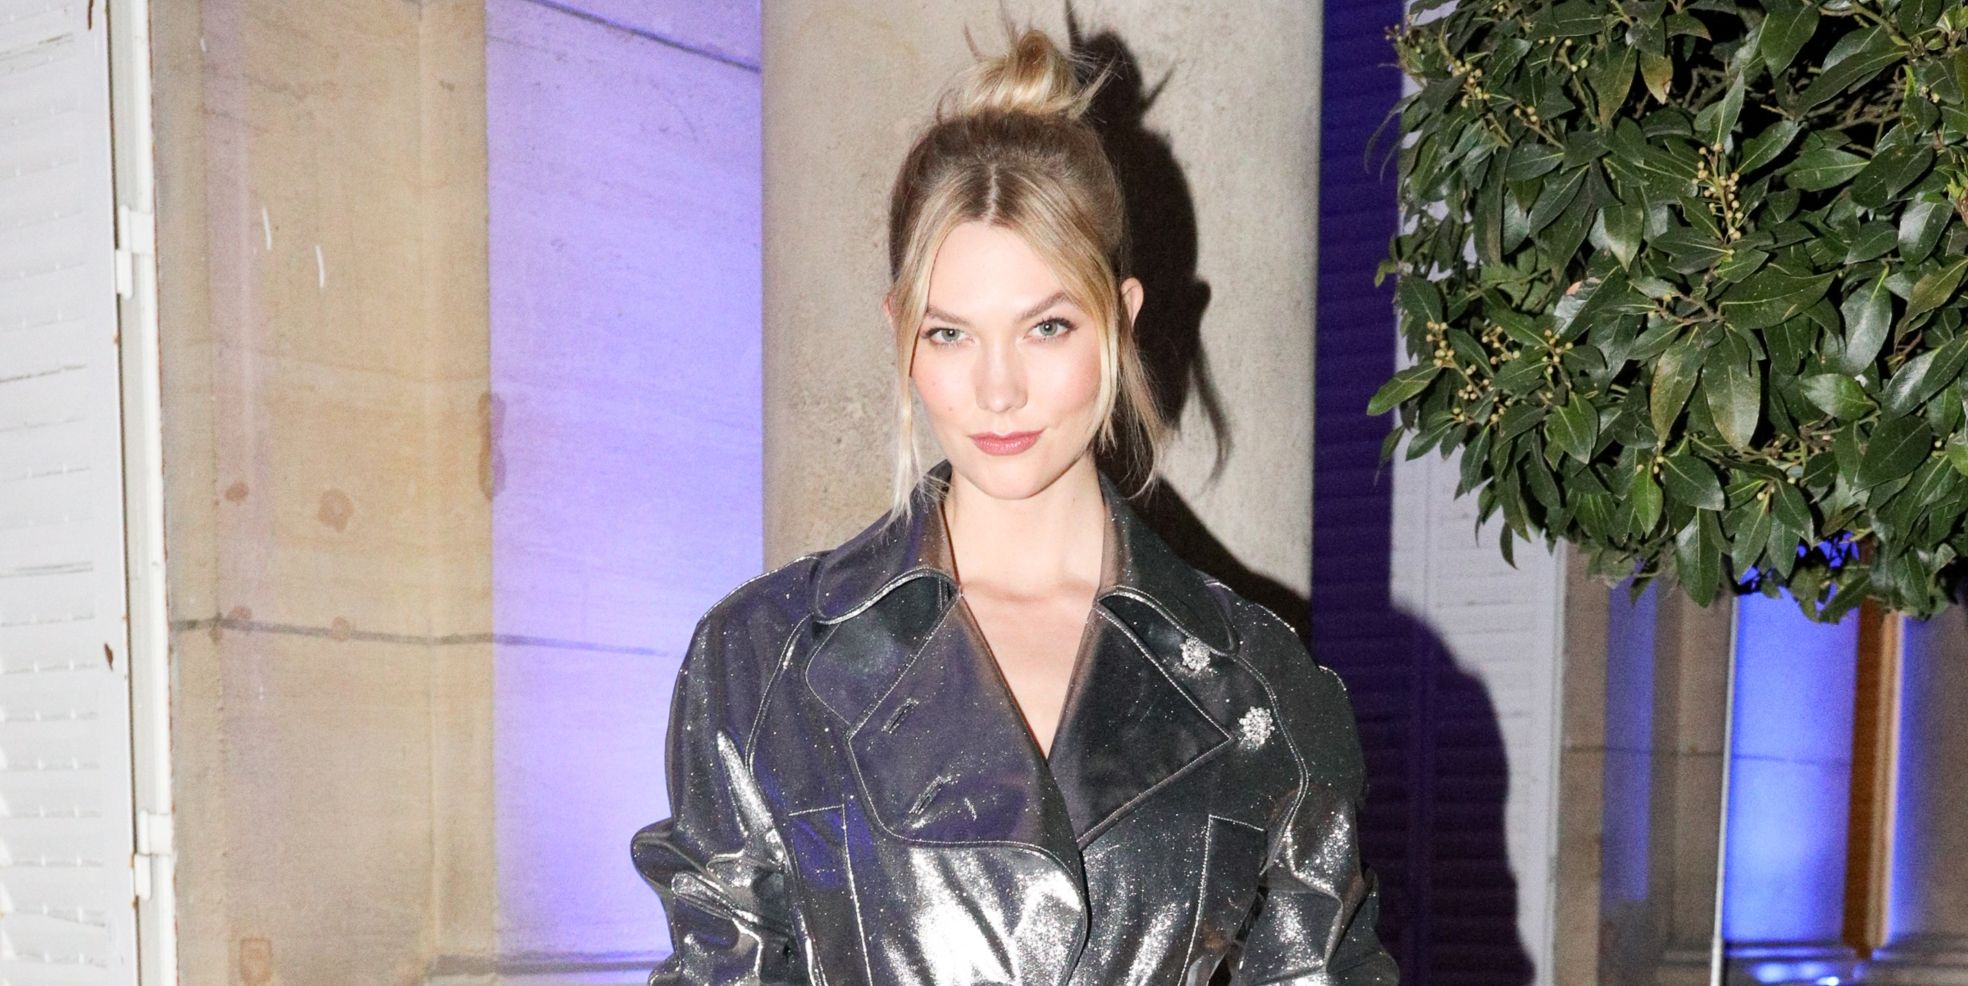 Gemma Chan, Anna Wintour, Karlie Kloss and more step out in their party best.